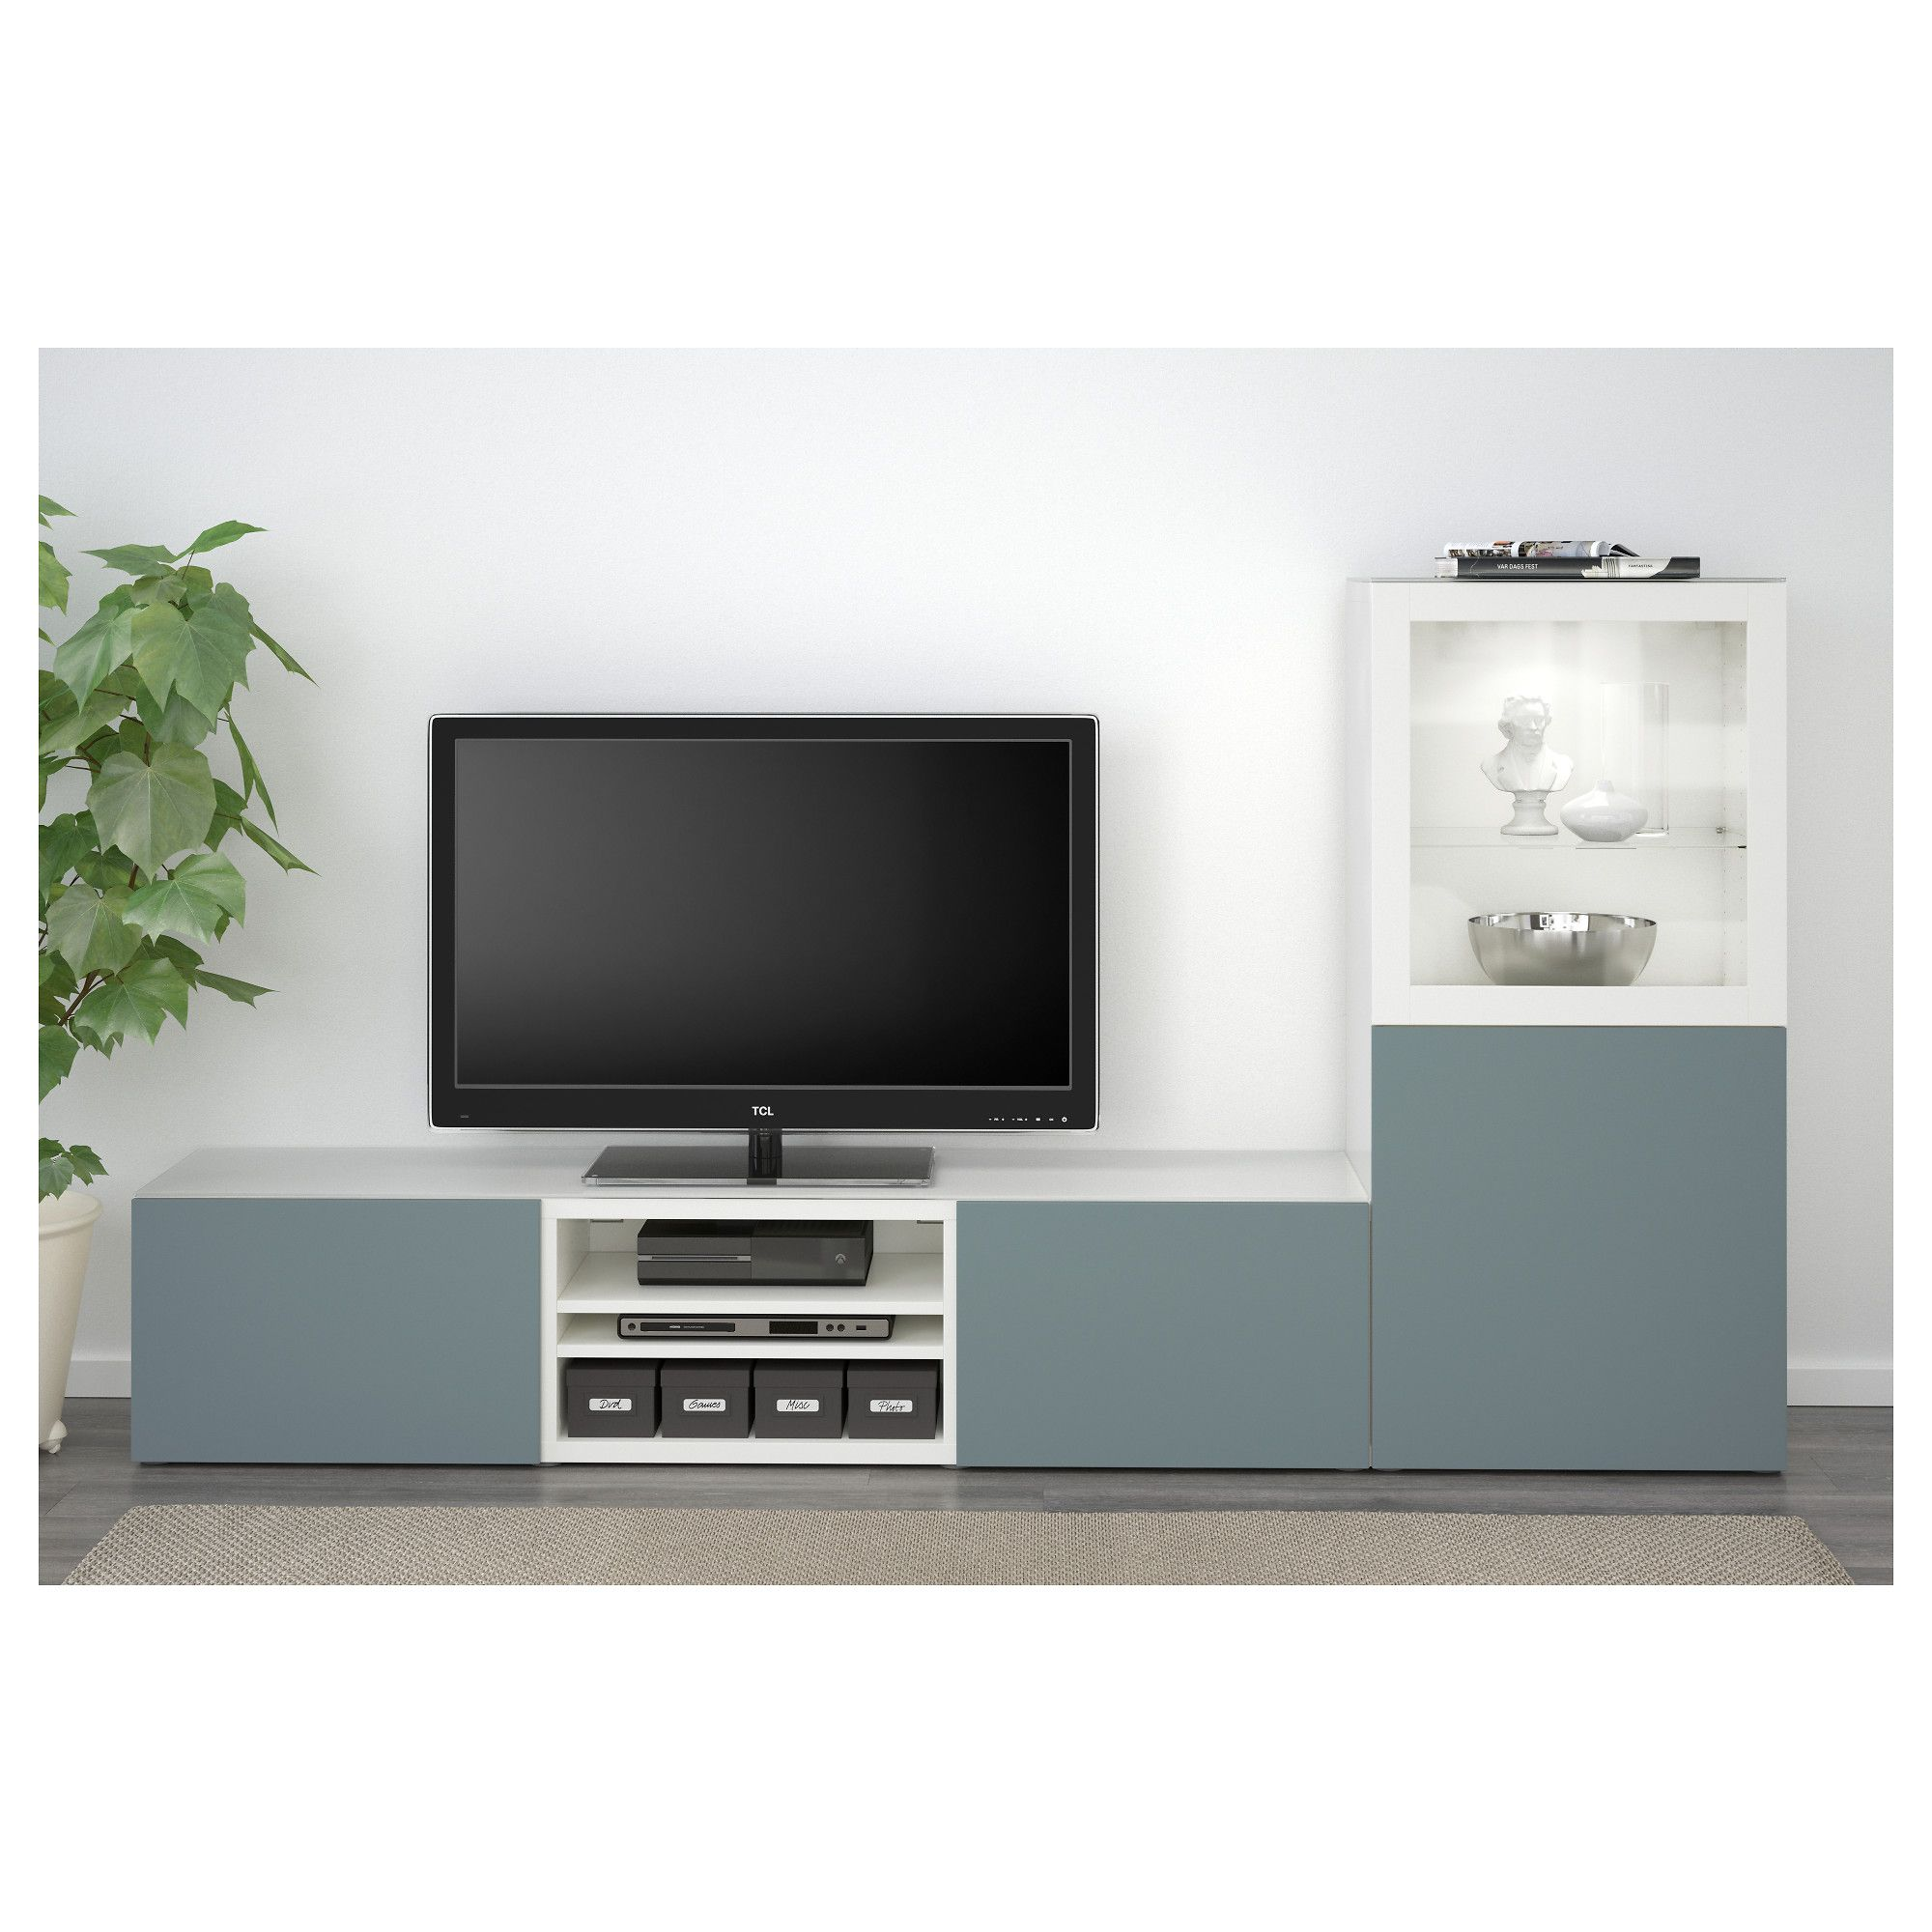 Best Tv Storage Combination Glass Doors White Valviken Gray  # Ikea Meuble Tv Besta Burs